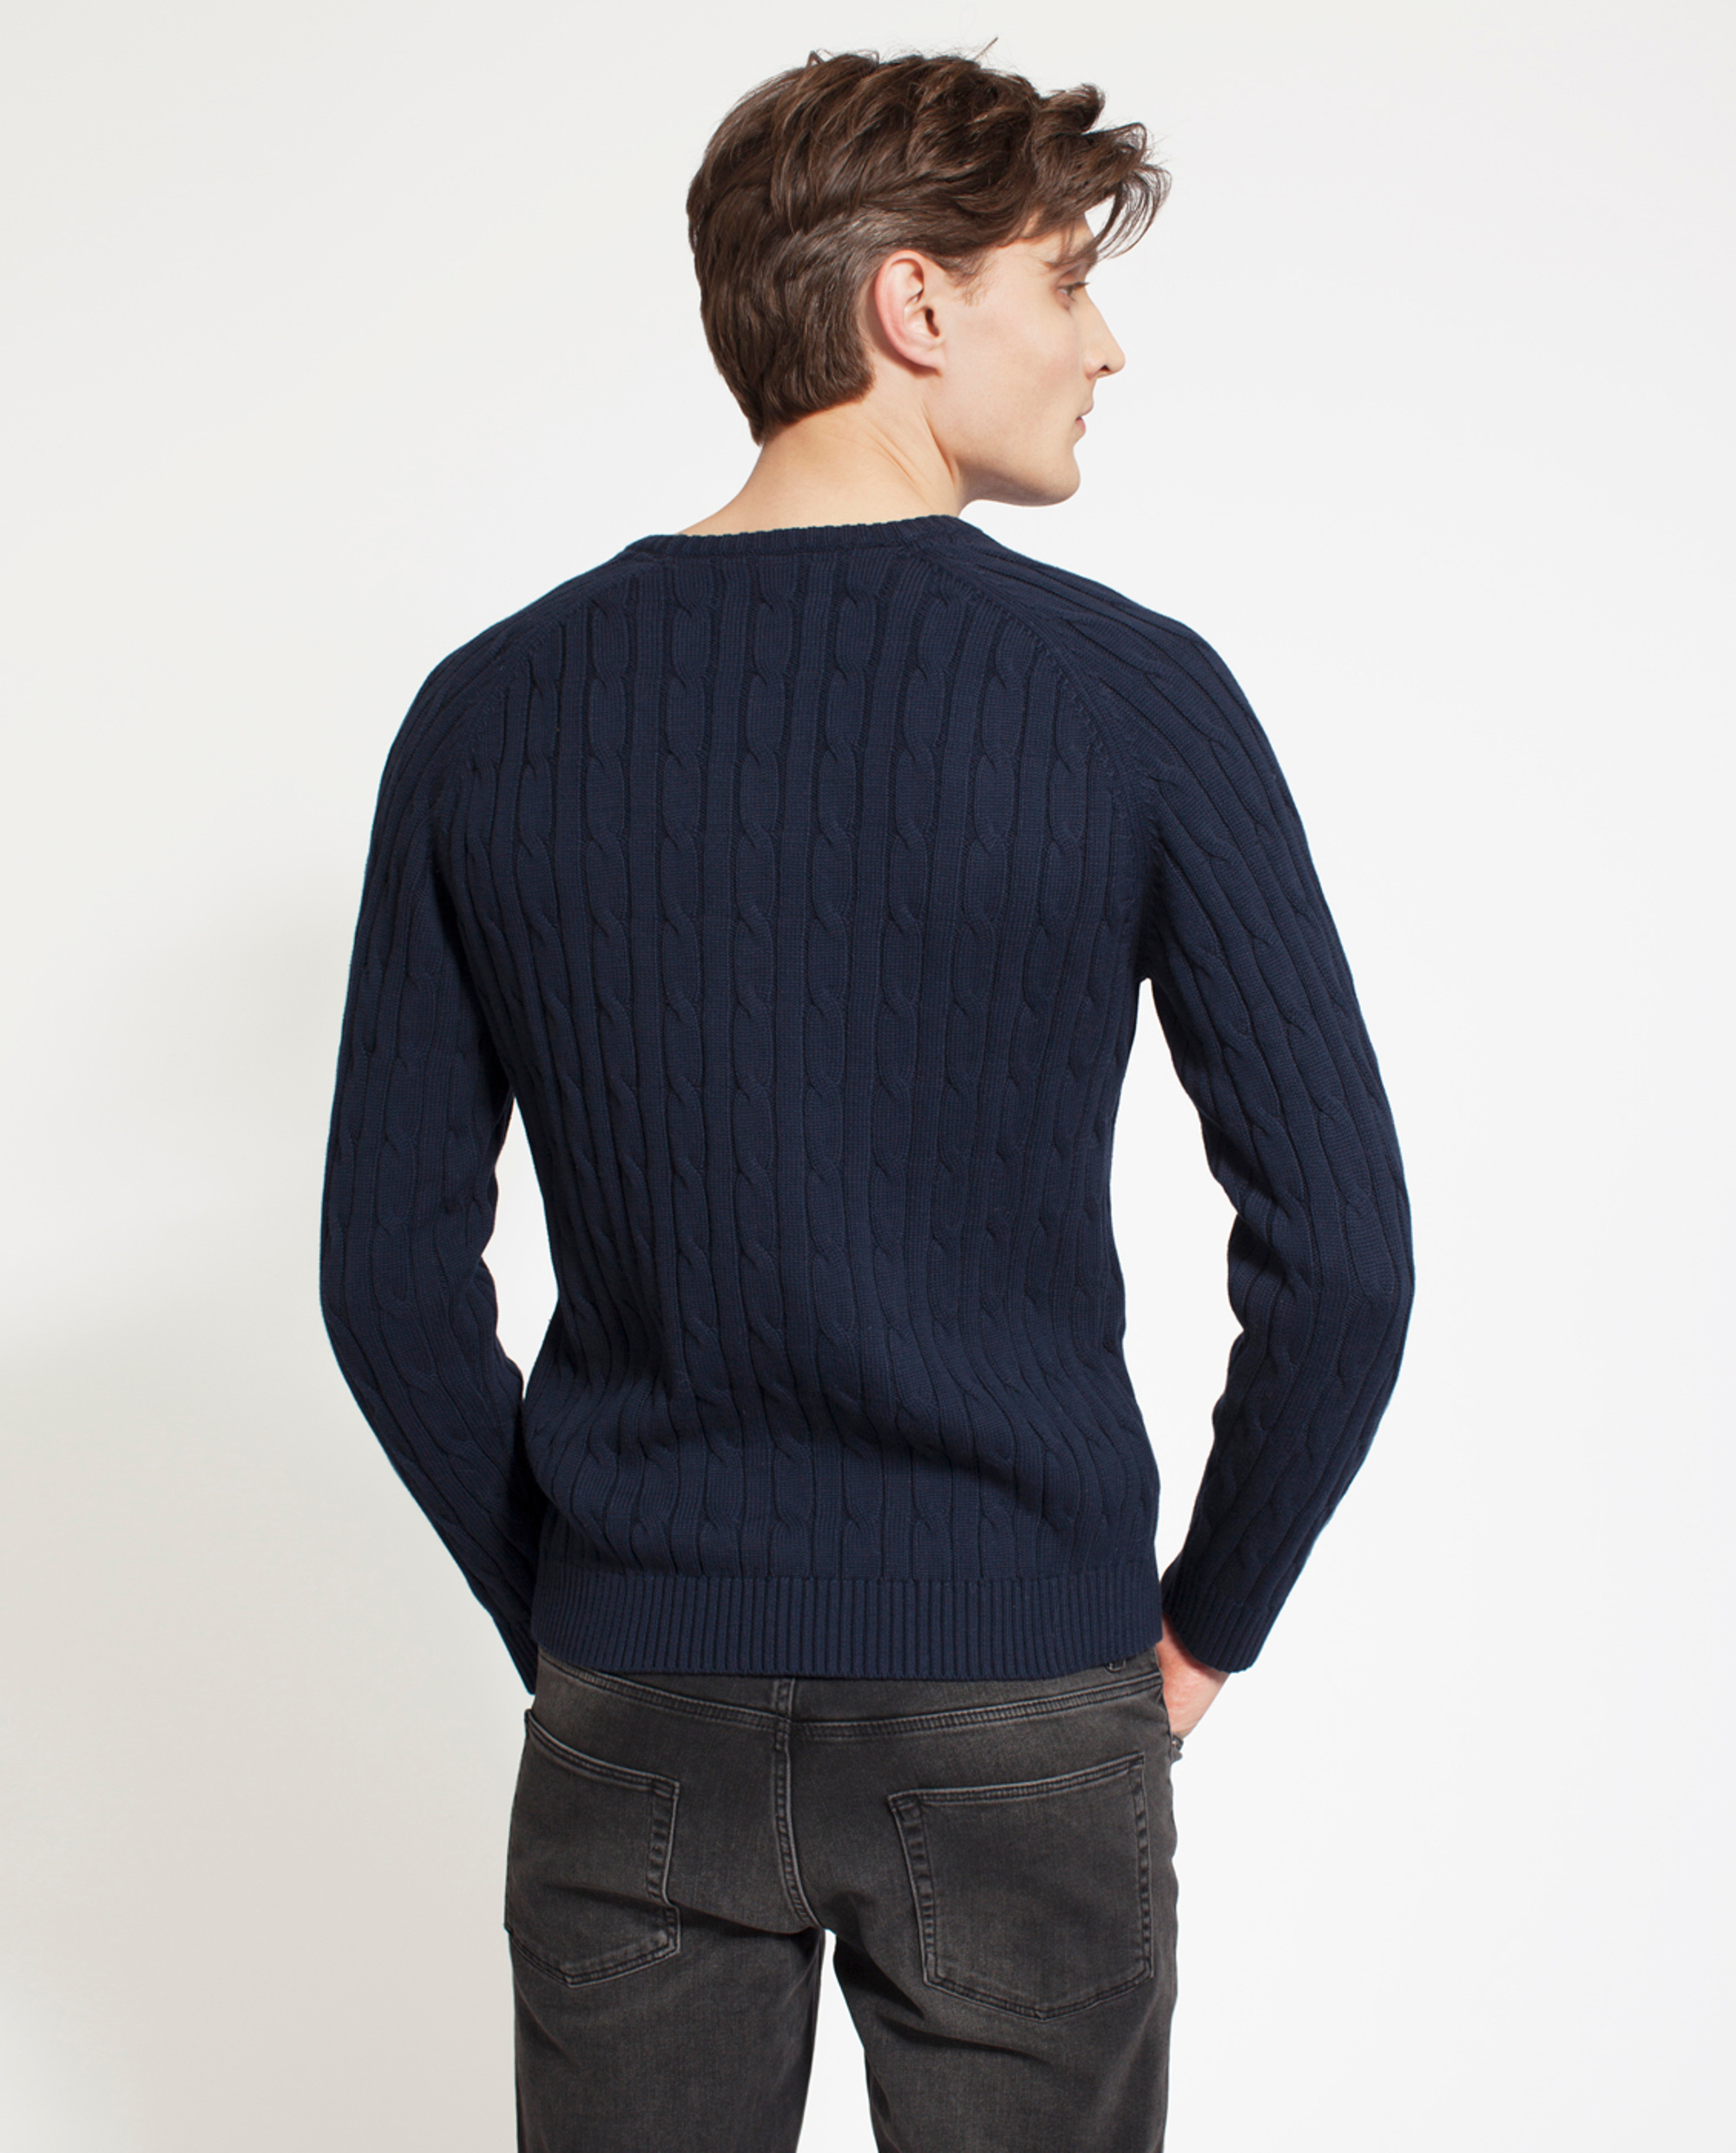 Andrew Cotton Cable Sweater, Deepest Blue